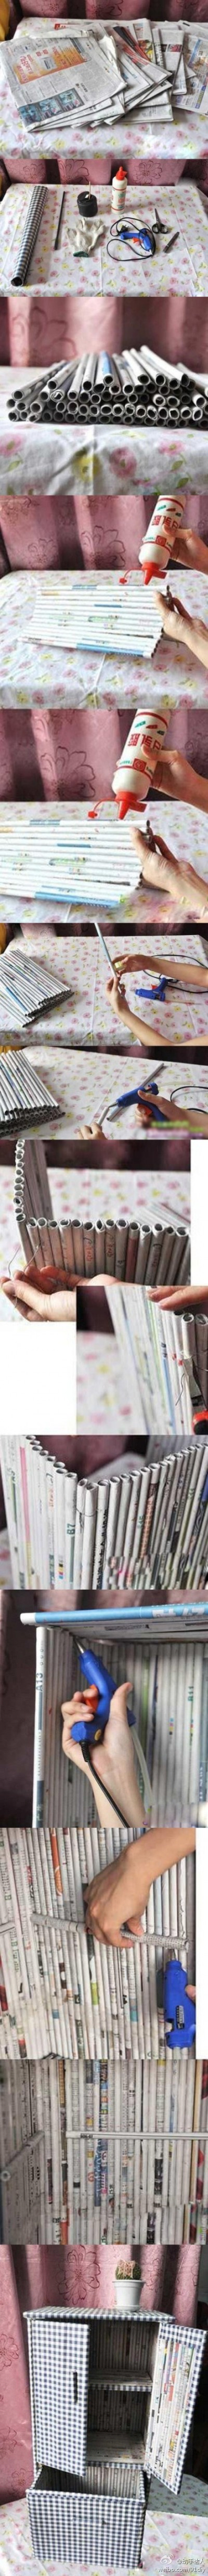 How to use recycled newspaper to make a storage bin step by step DIY tutorial picture instructions